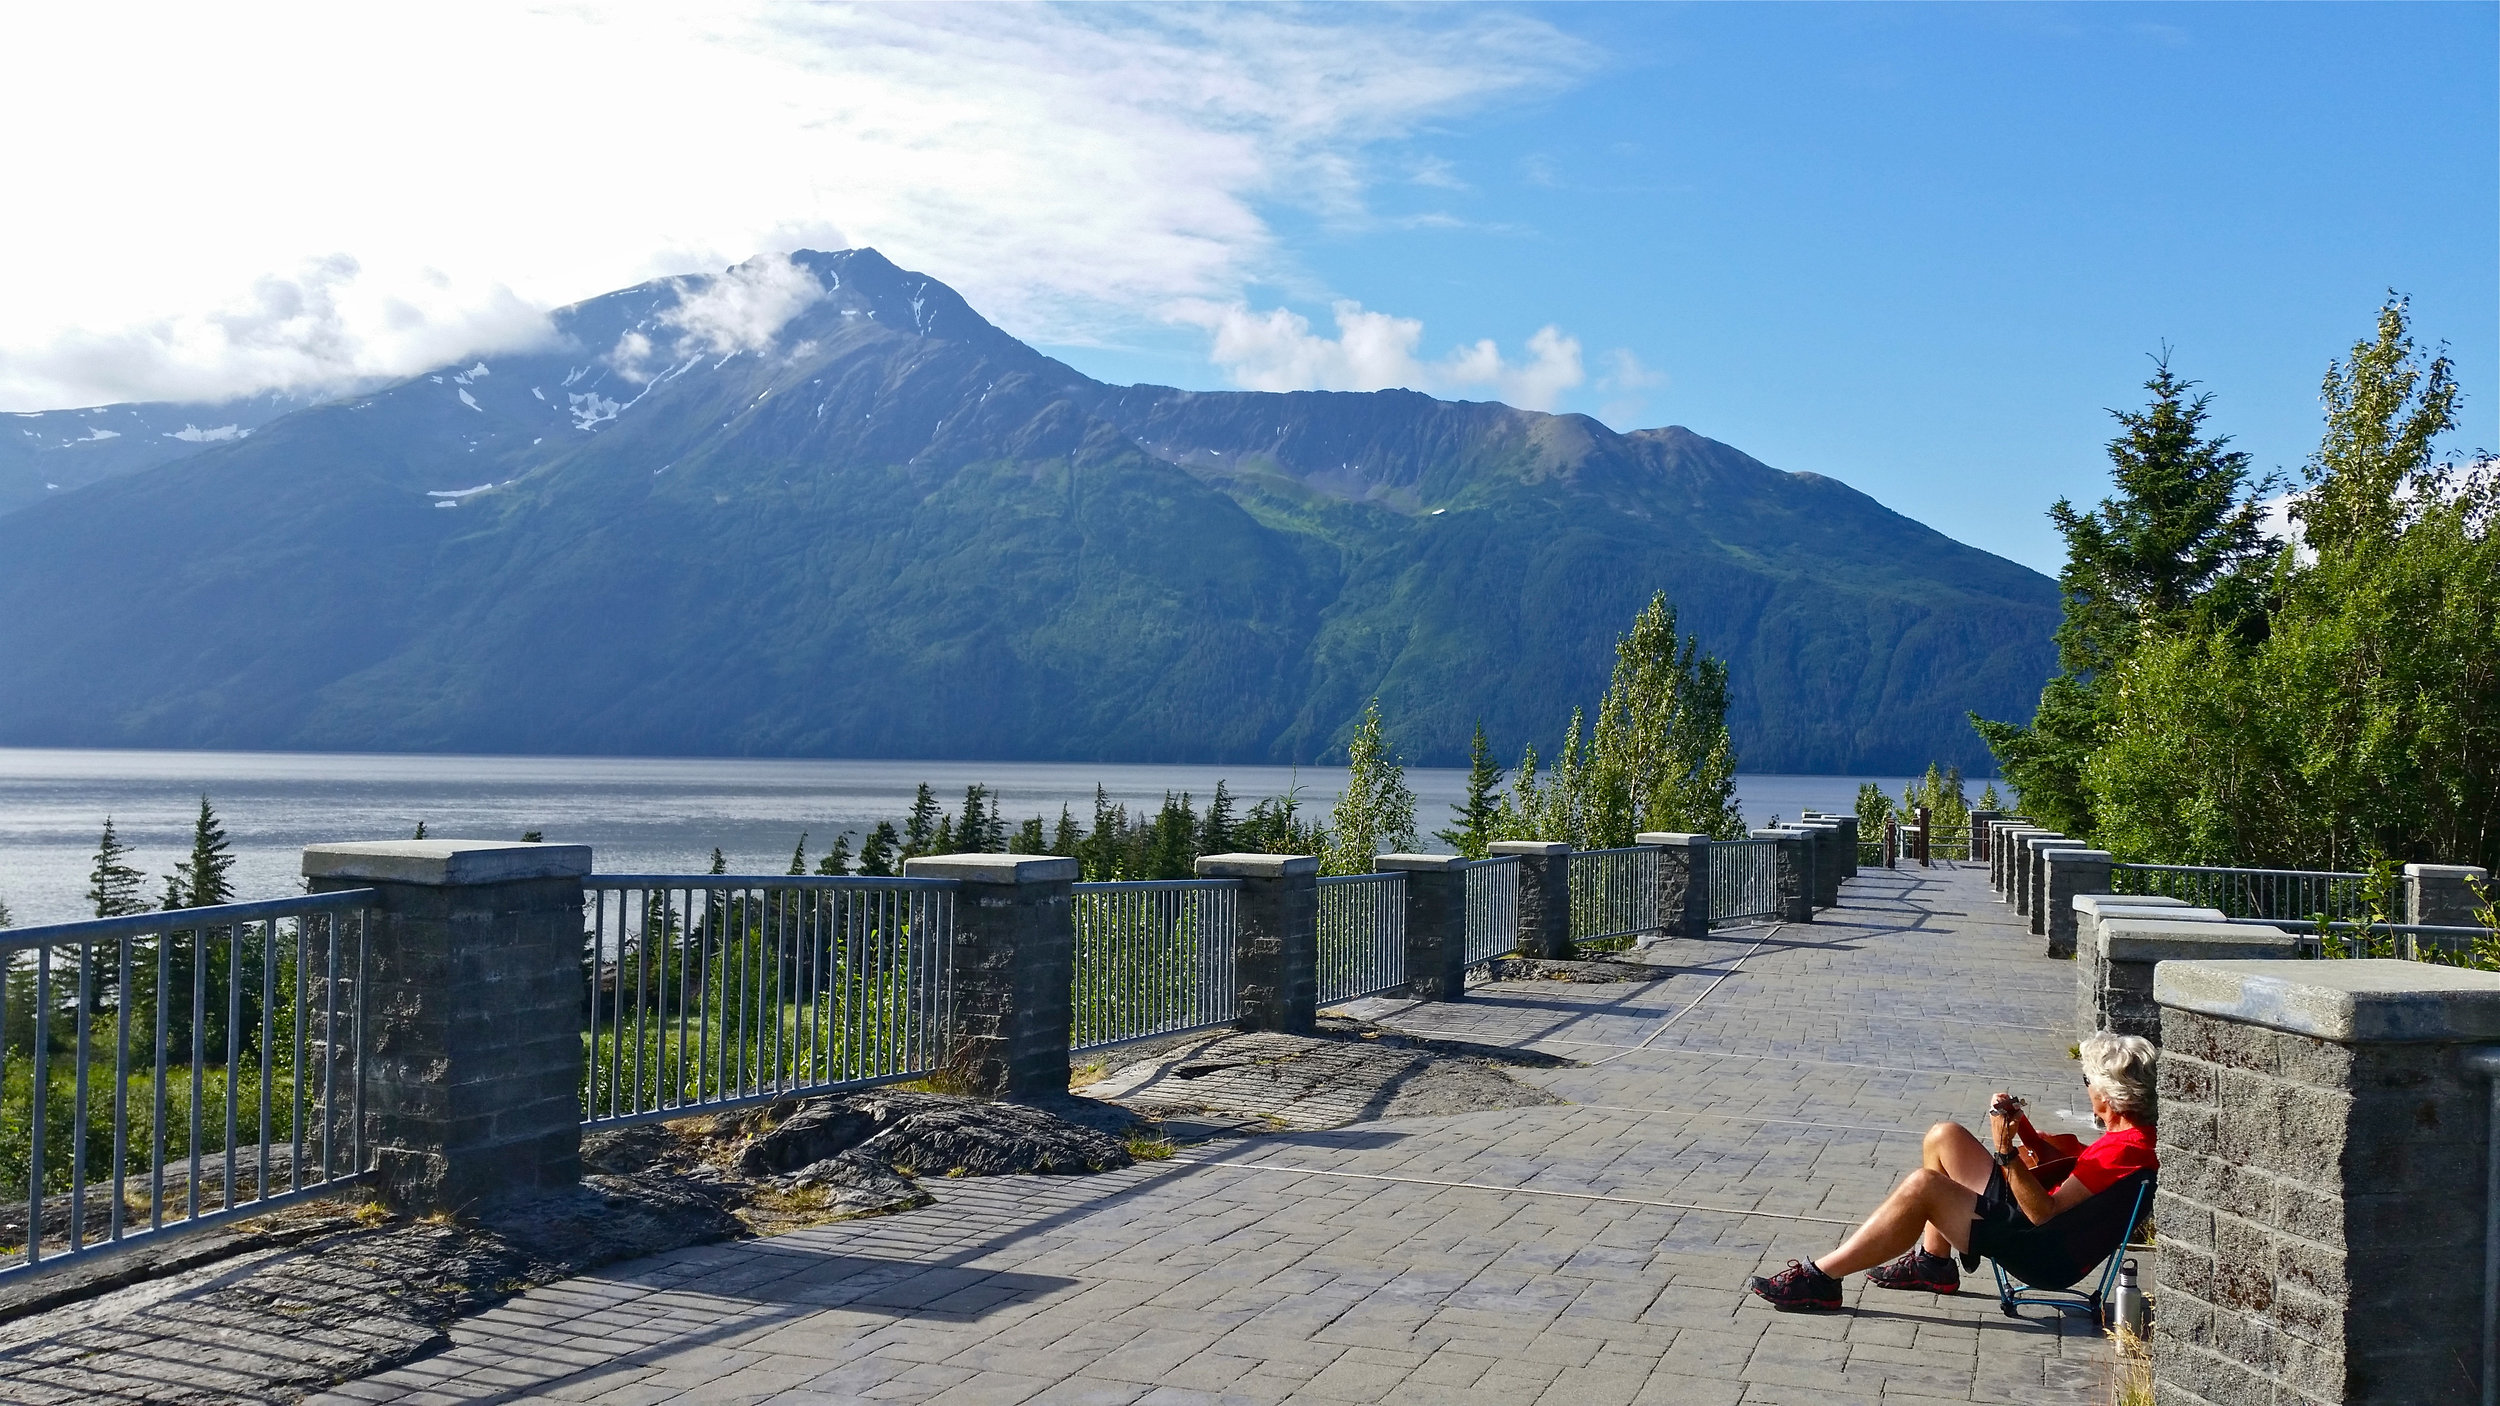 Scott at Bird Point on Turnagain Arm with mountain views